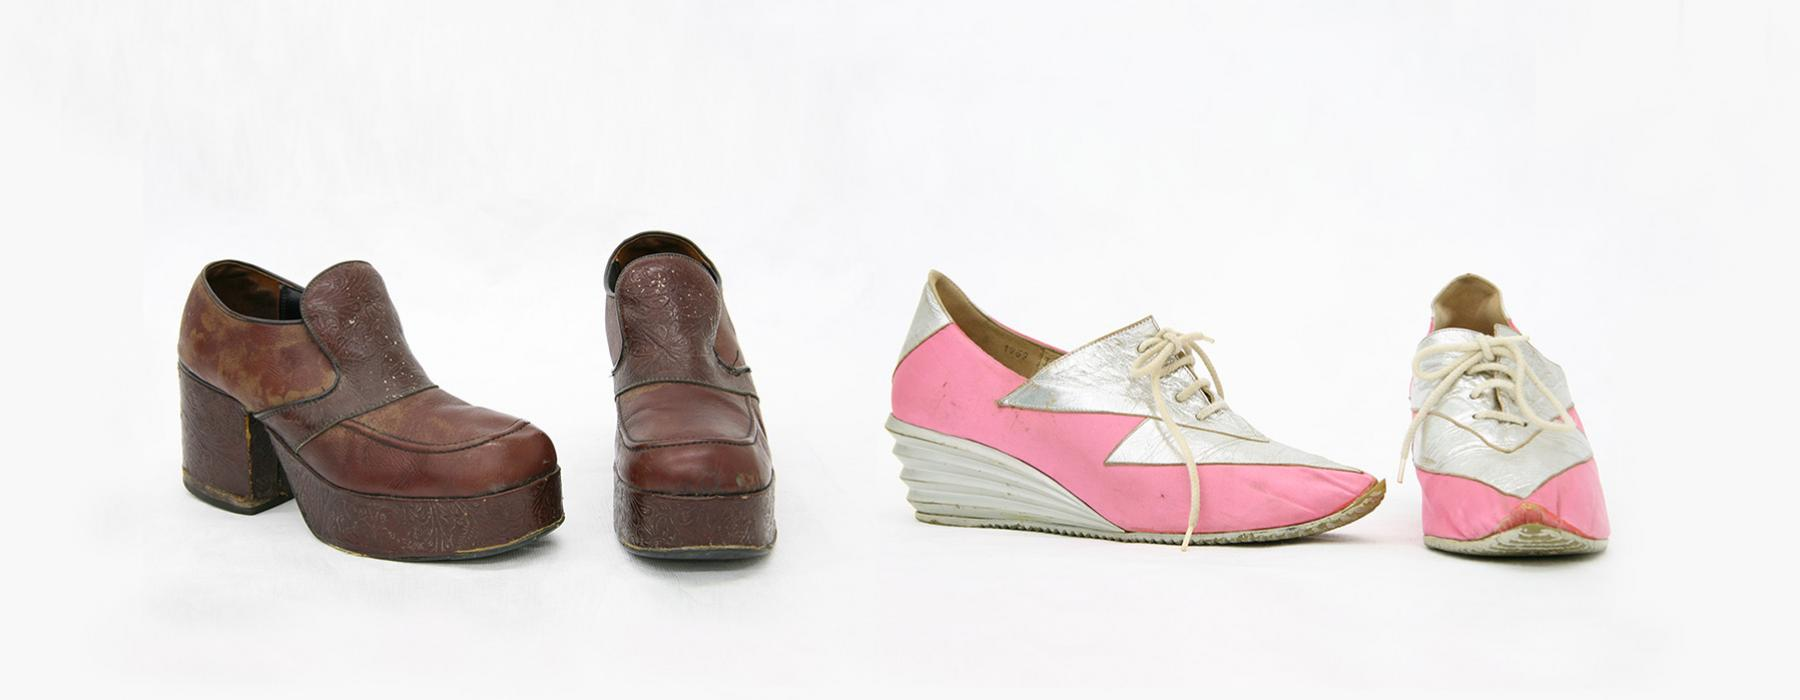 Two pairs of shoes from the 1970s, one brown pair and one pink and white pair